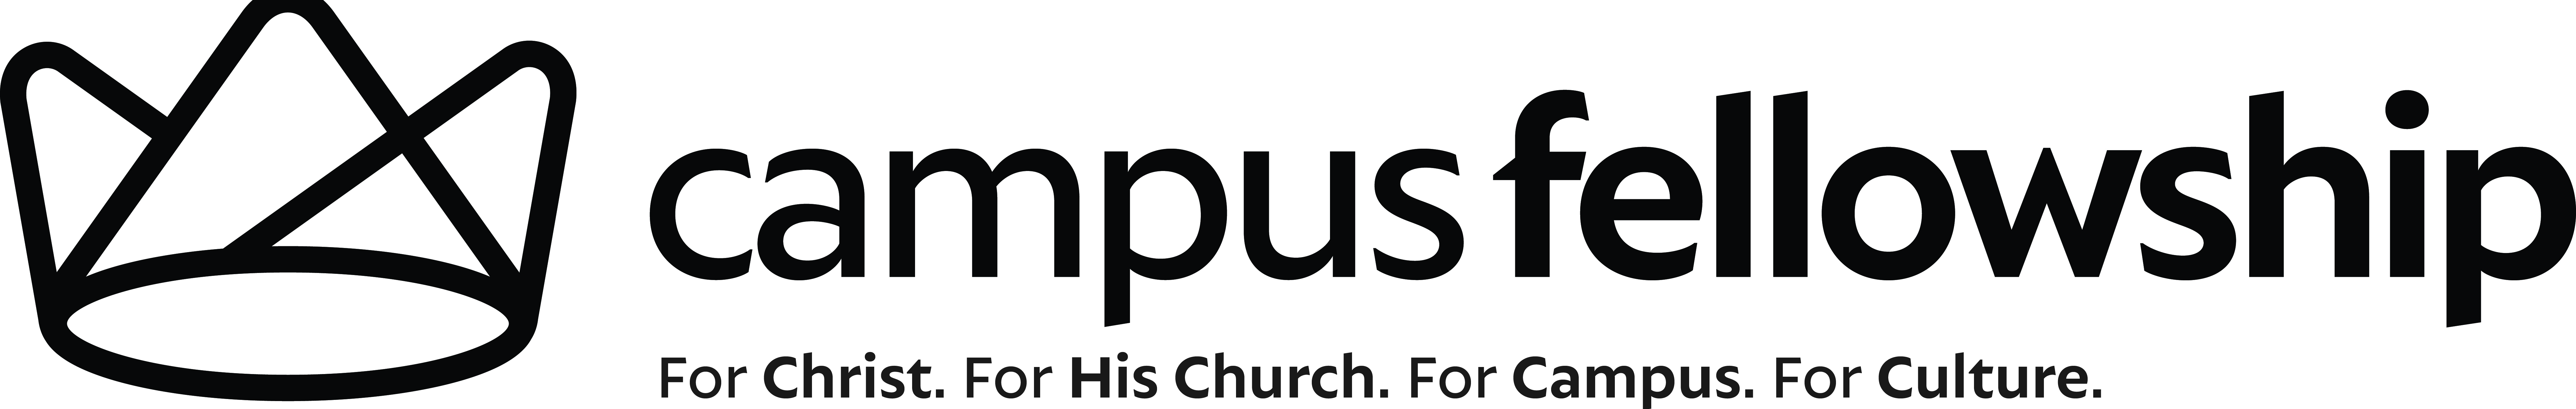 Students for Campus Fellowship Header